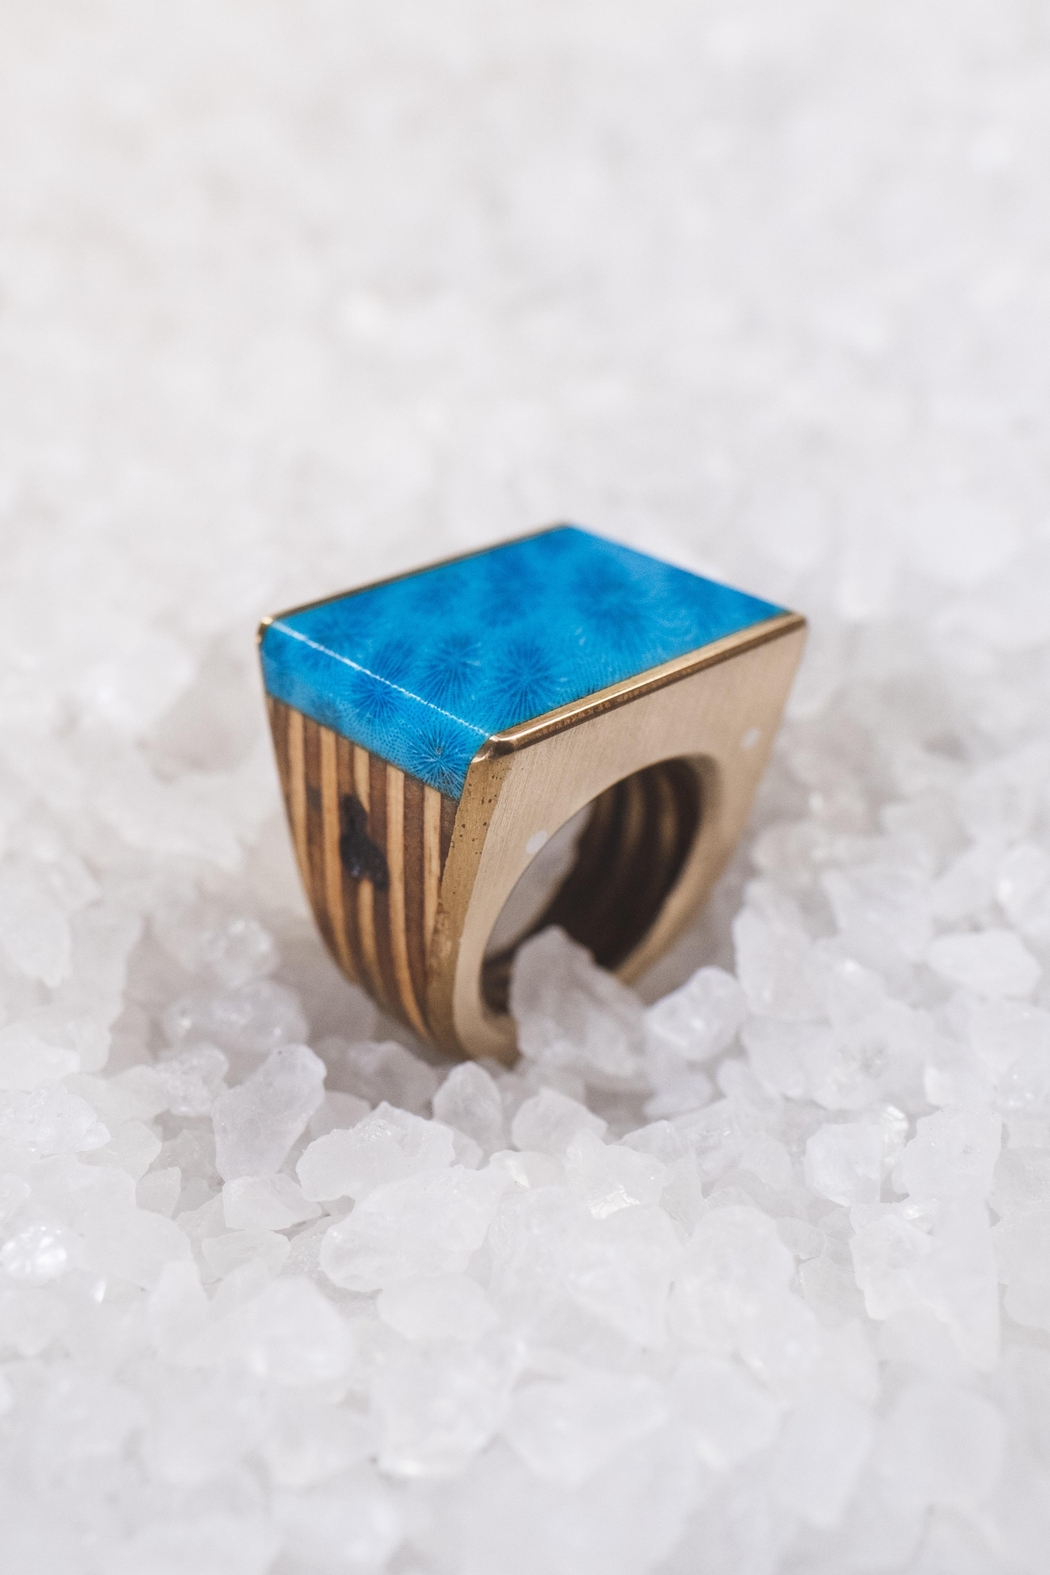 Sticks & Stones Accessories Blue Coral Ring - Main Image